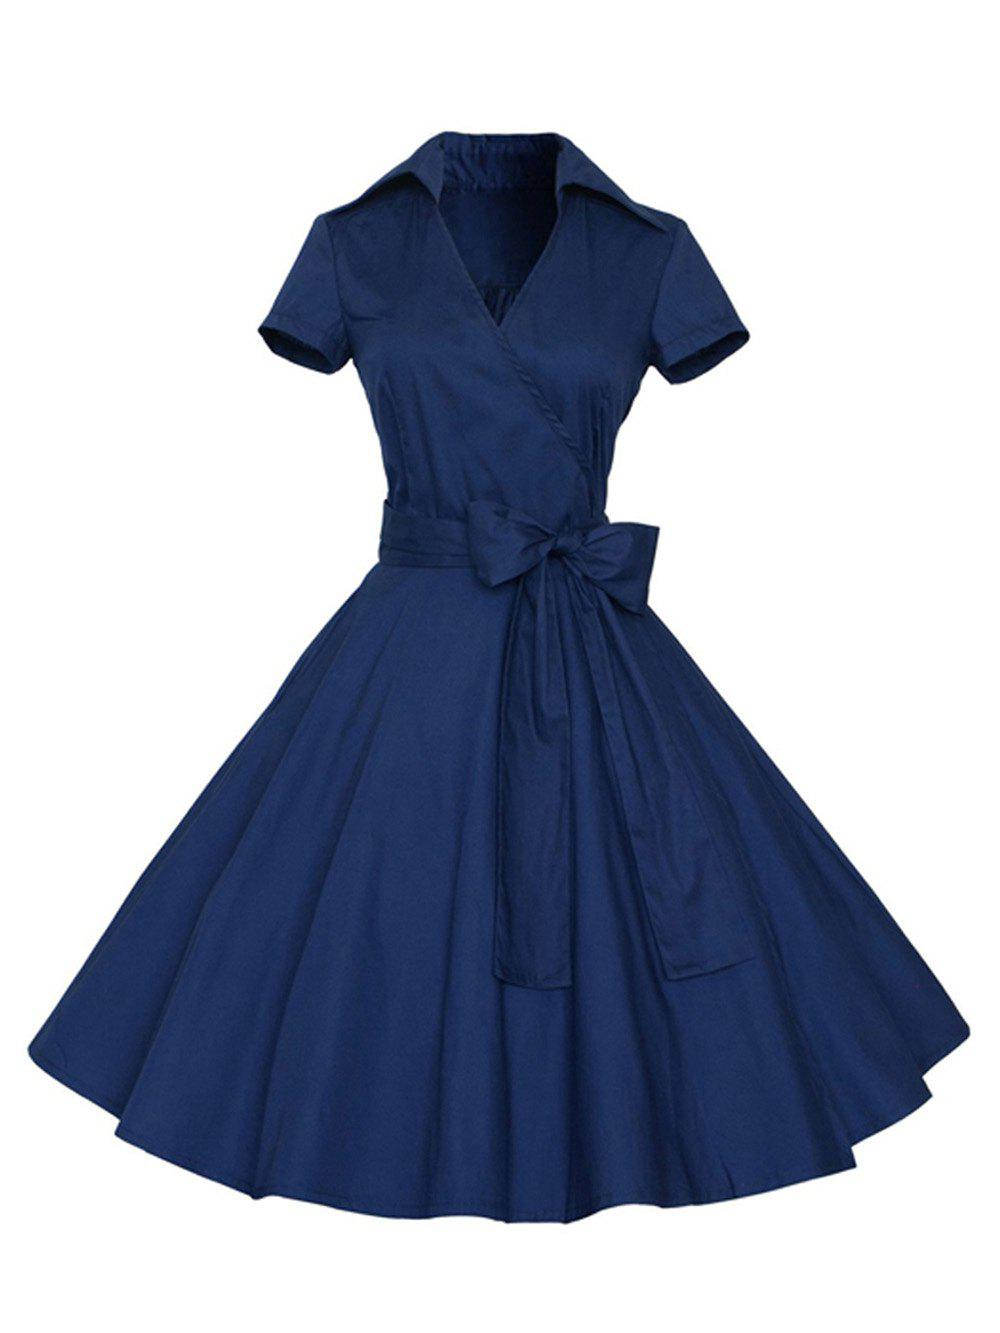 Fancy Hepburn Vintage Series Women Dress Spring And Summer Pure Color Lapel V-neck Design Short Sleeve Retro Belt Dress